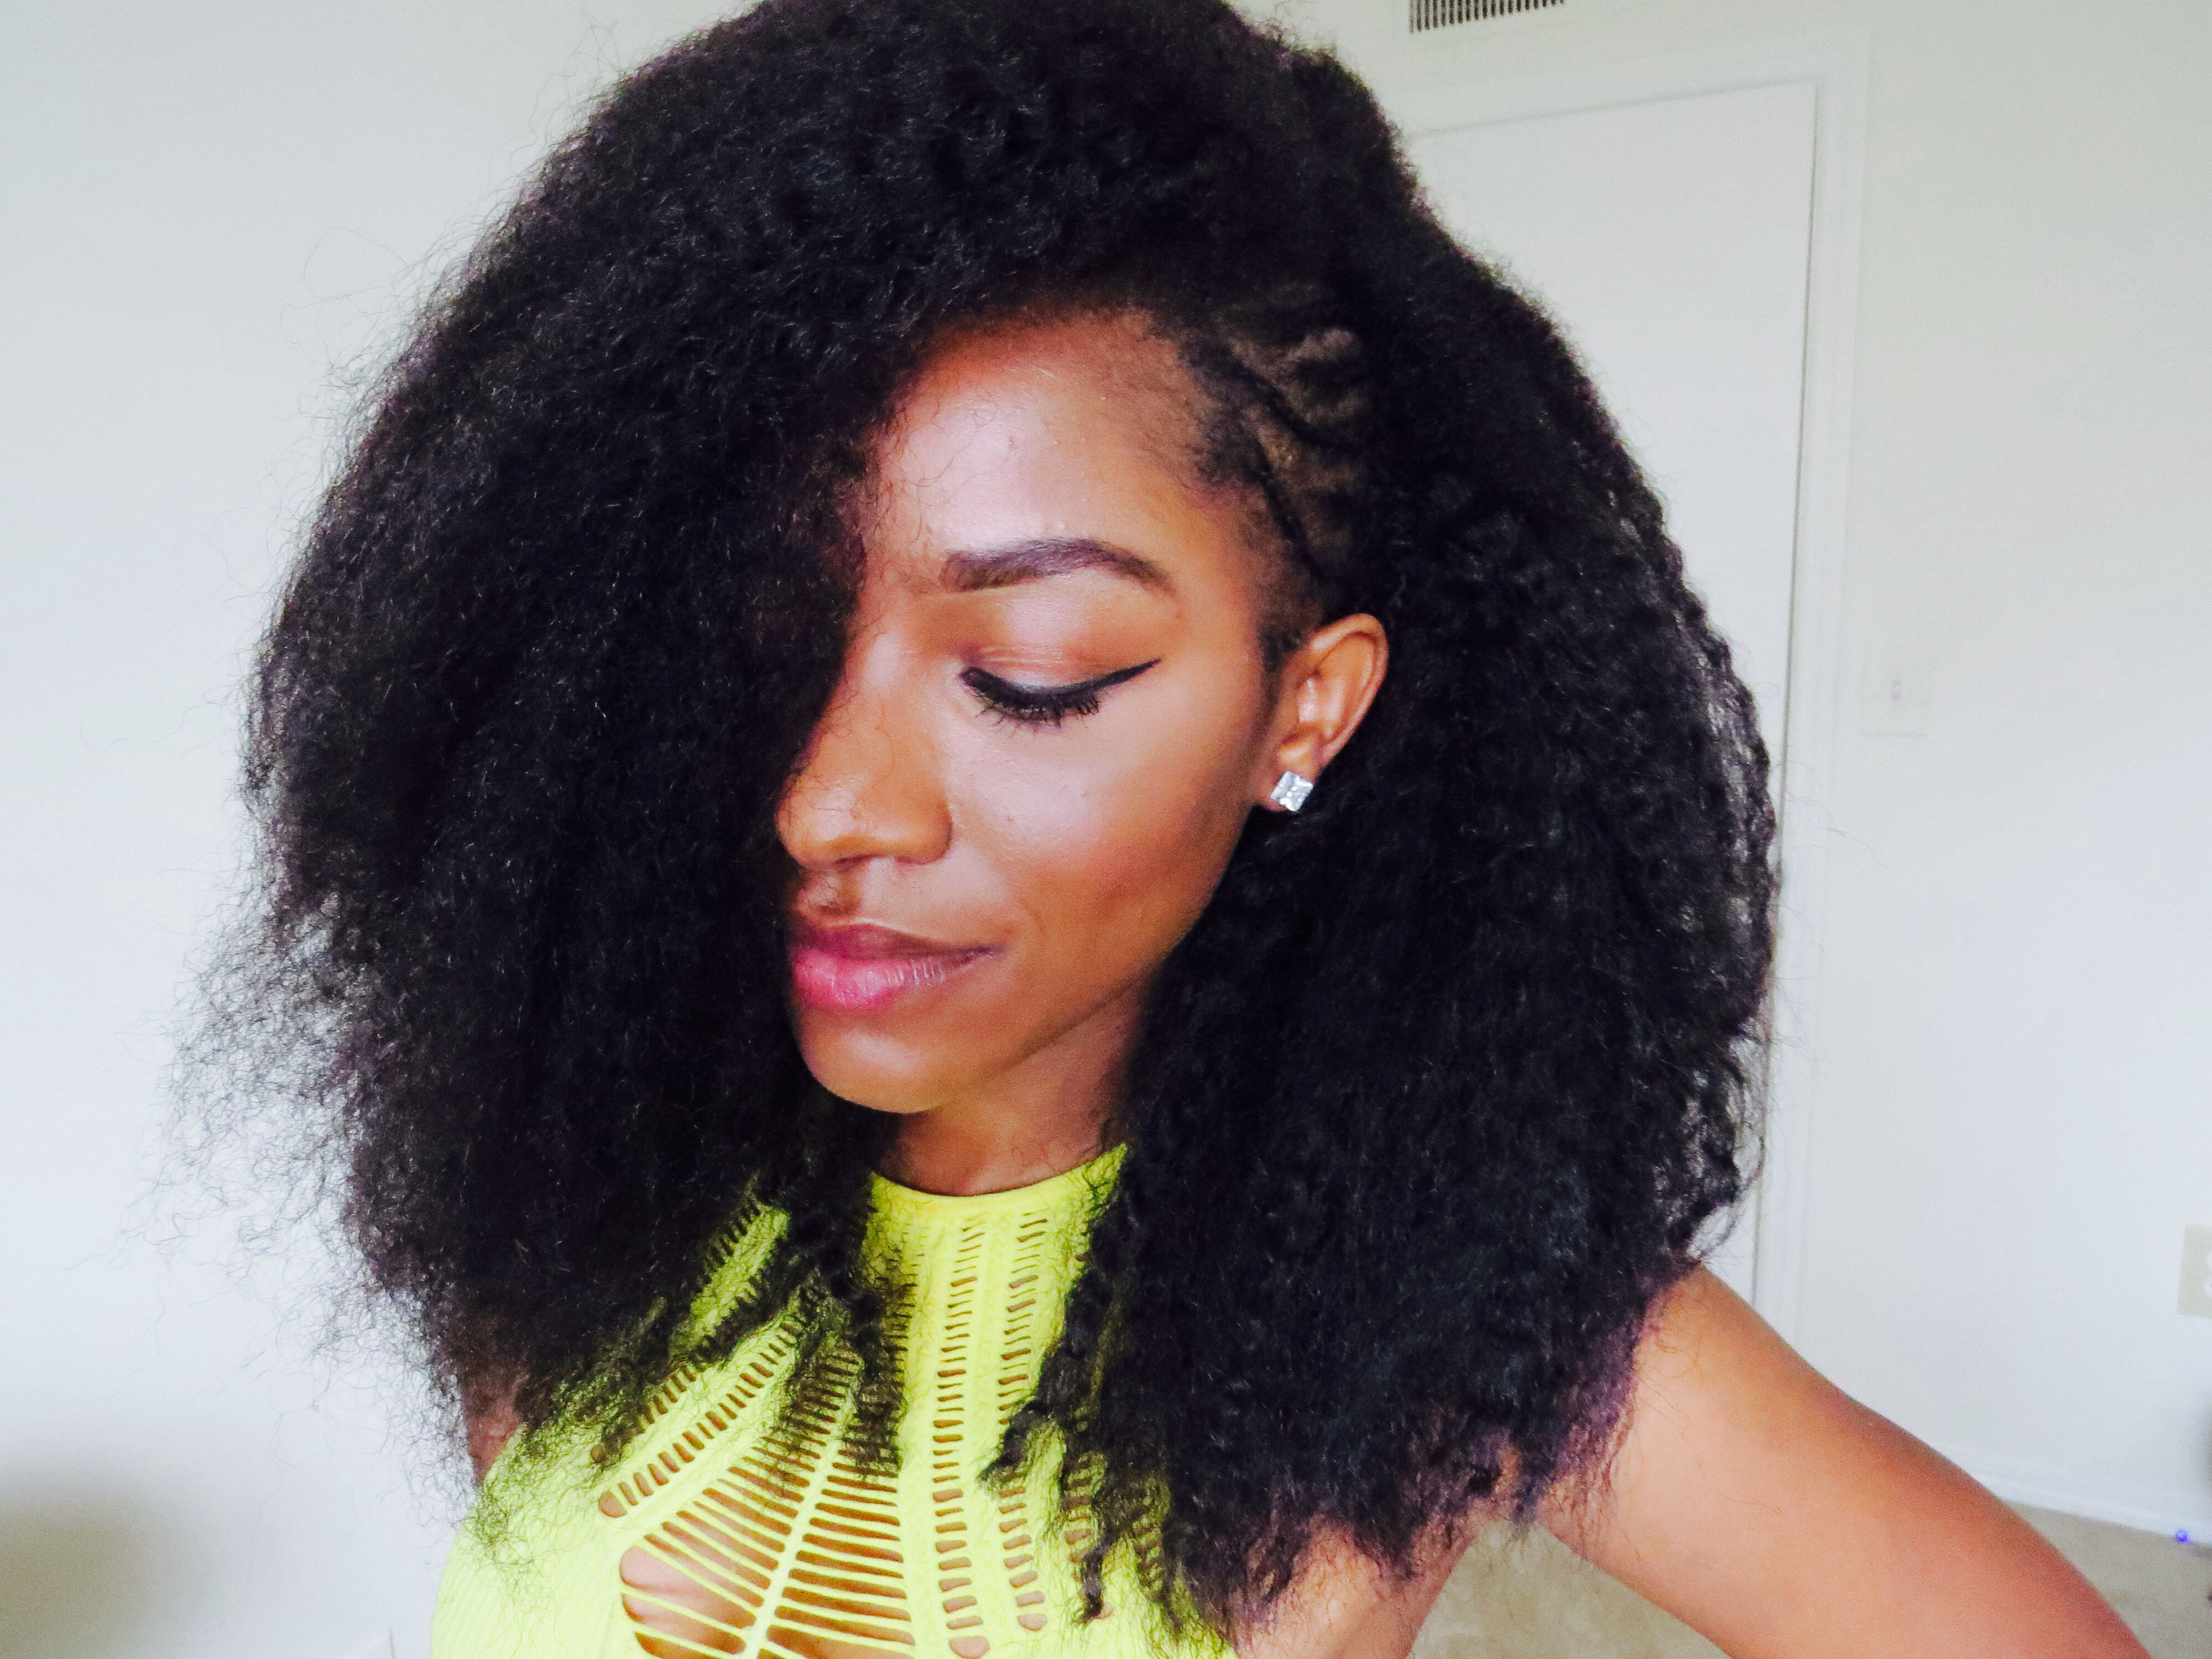 Hairstyles Braids On The Side: Crochet Braids W/ Exposed Side Braids